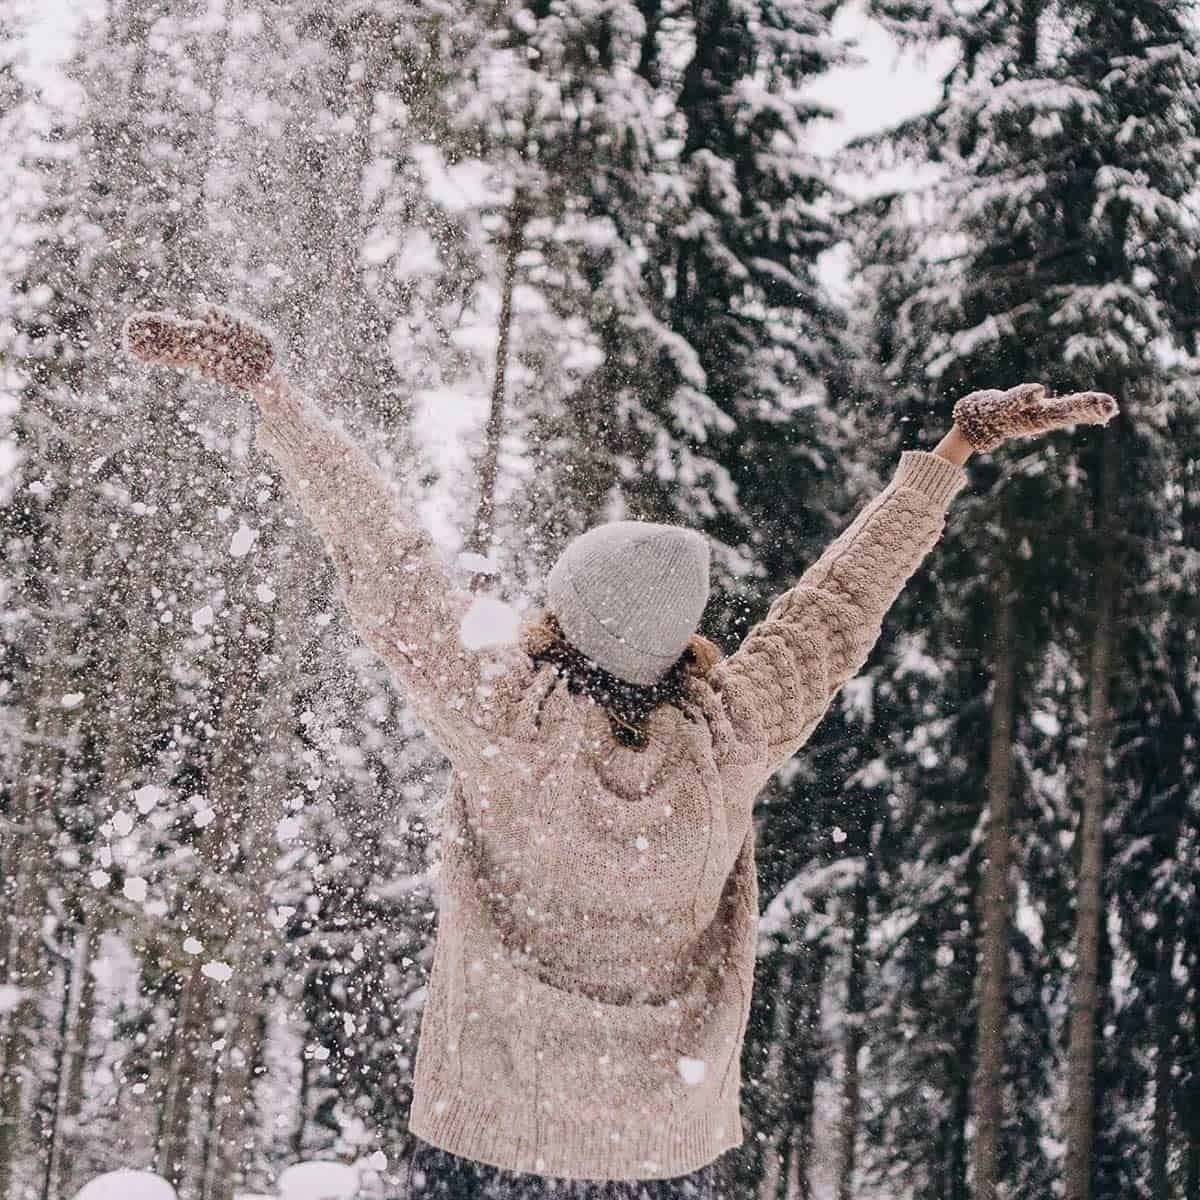 woman in hat and pink sweater enjoying an intentional life outdoors in the snow